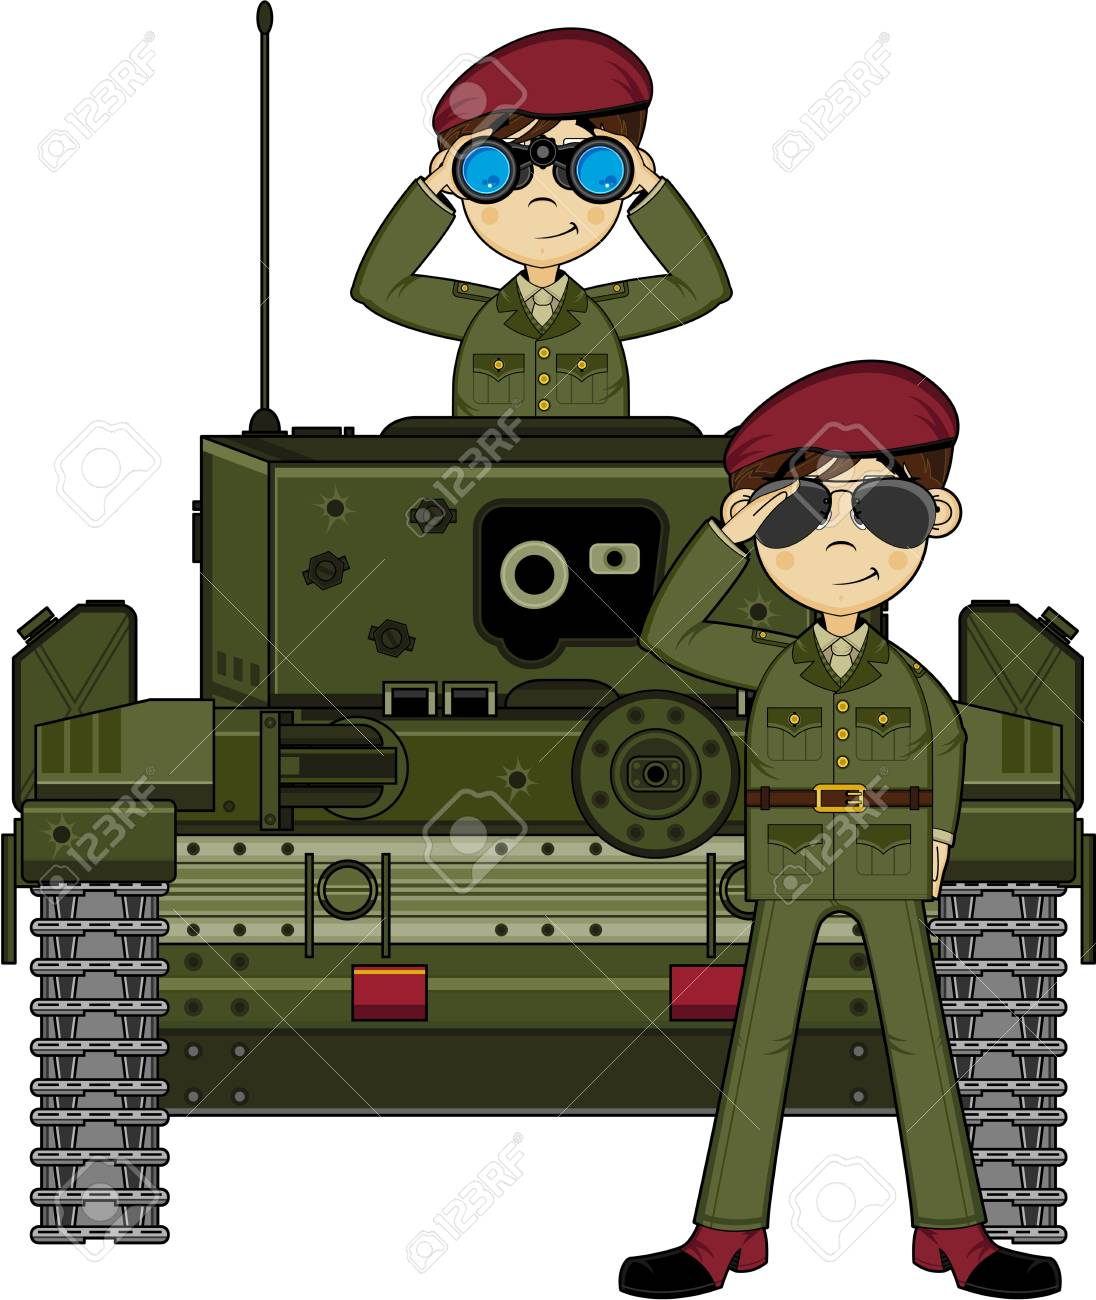 Cartoon Army Soldiers And Tank Royalty Free Cliparts Vectors And Stock Illustration Image 81795614